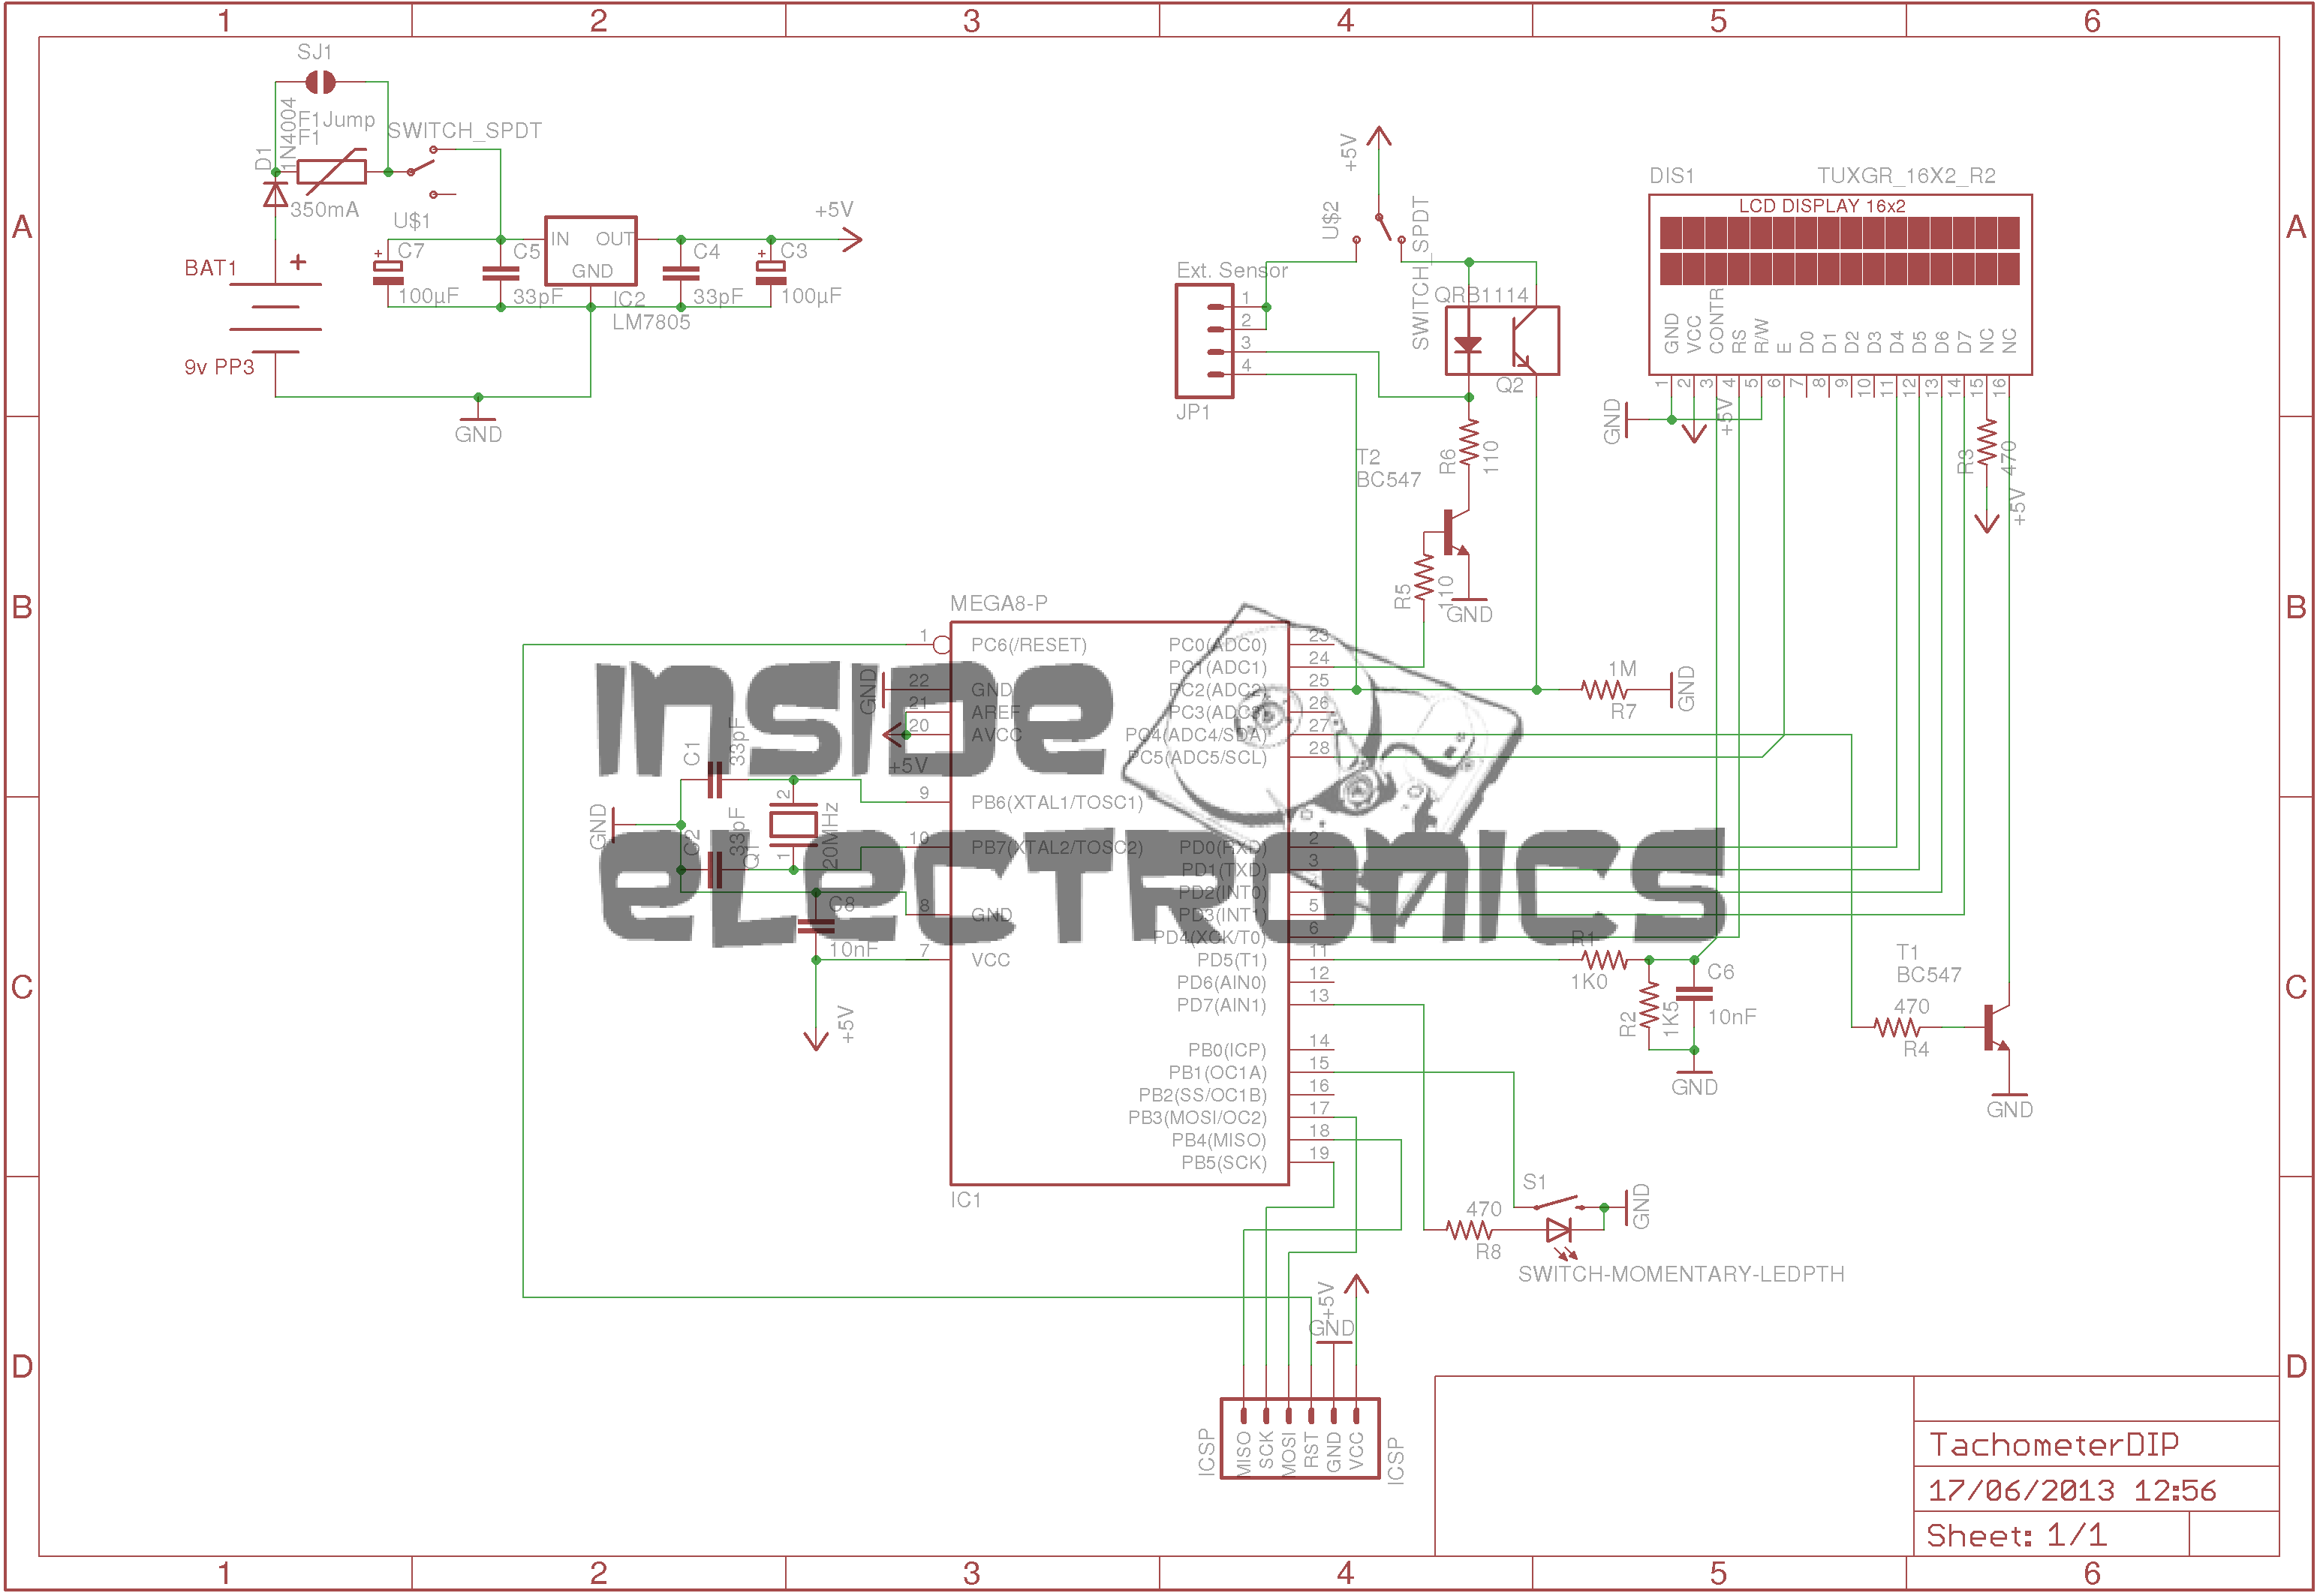 Avr Optical Tachometer Experimental Engineering Circuit Led The Infrared Very Schematic